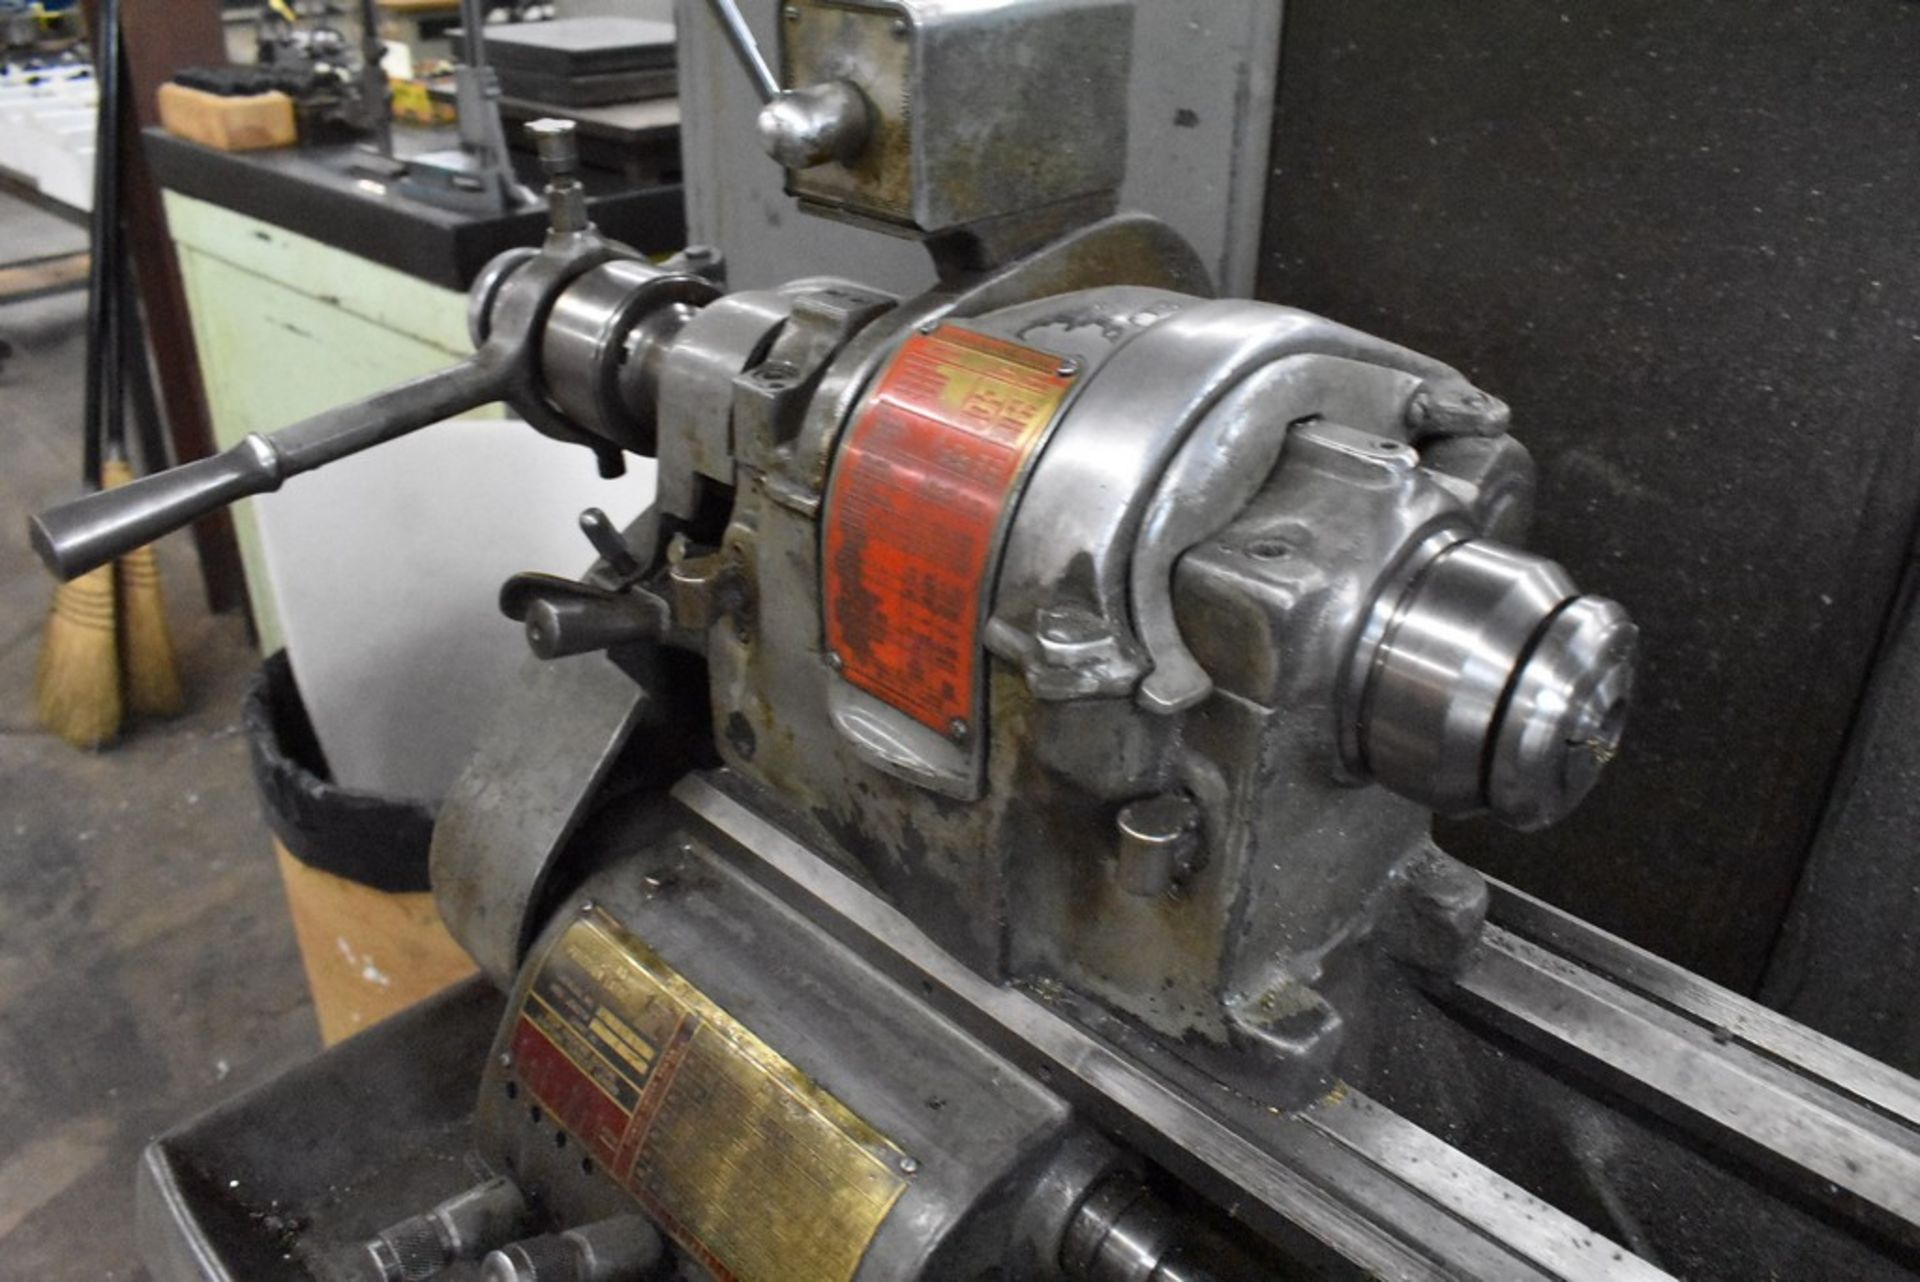 """SOUTH BEND 10""""X30"""" CABINET BASE TOOL ROOM LATHE, S/N 16711RKX12, WITH COLLET CLOSER, 4-WAY TOOL - Image 9 of 13"""